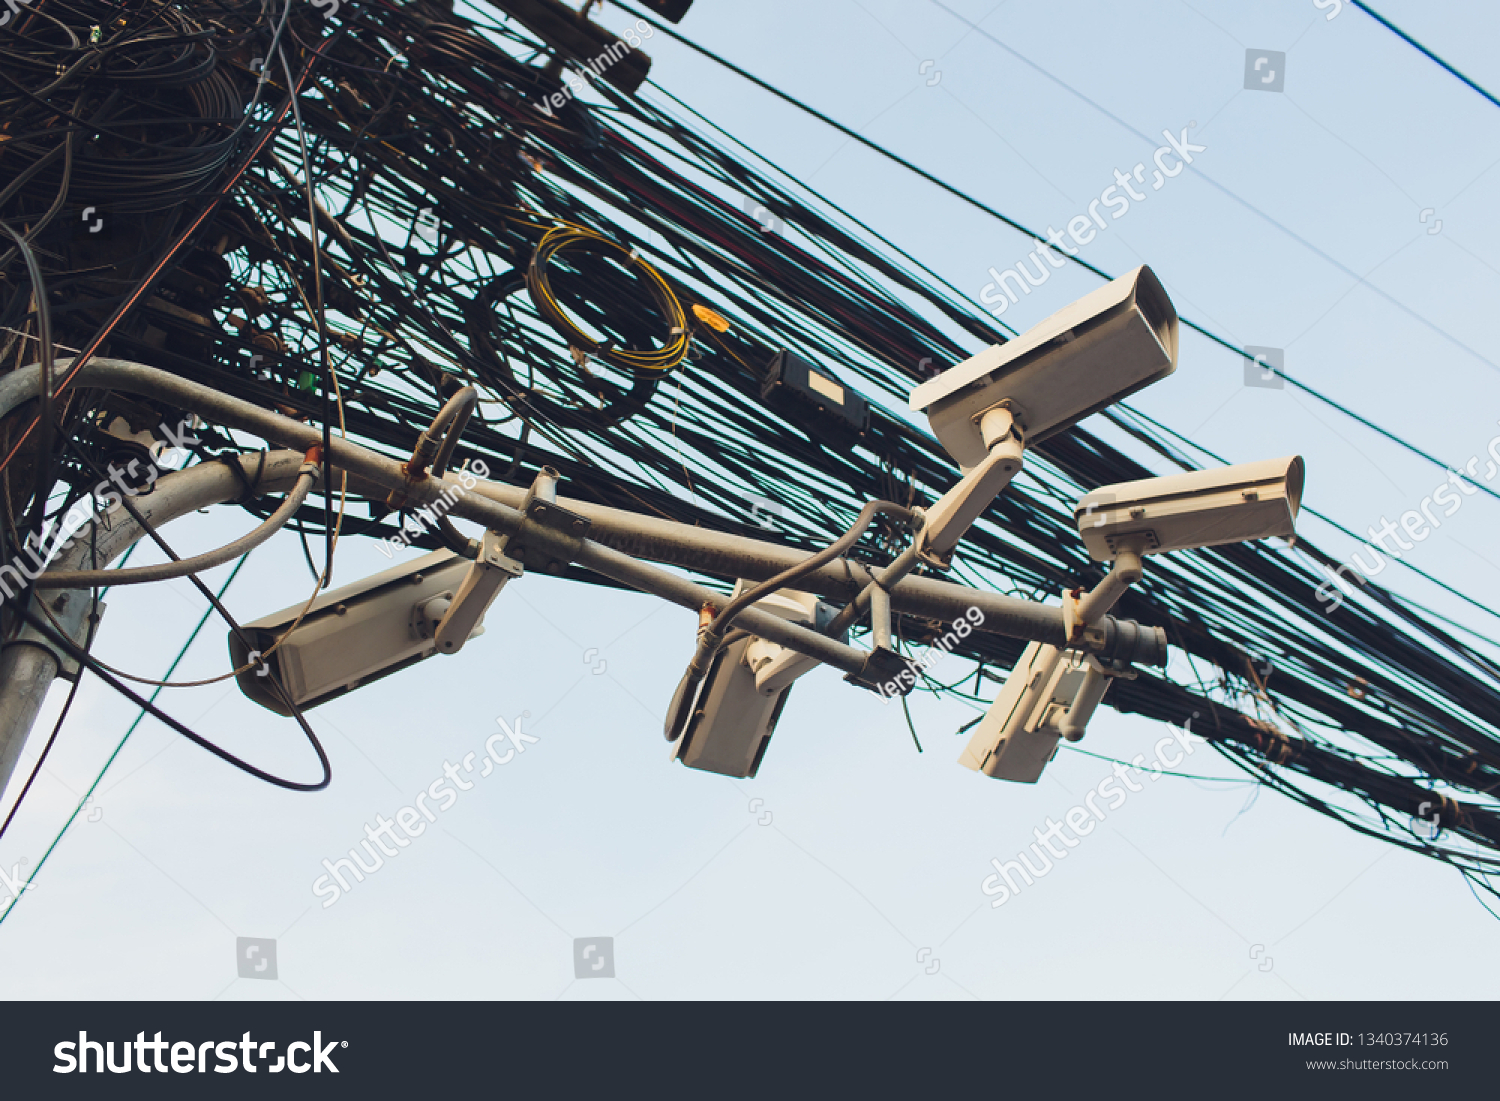 hight resolution of crazy messy chaos wires cables on electric poles